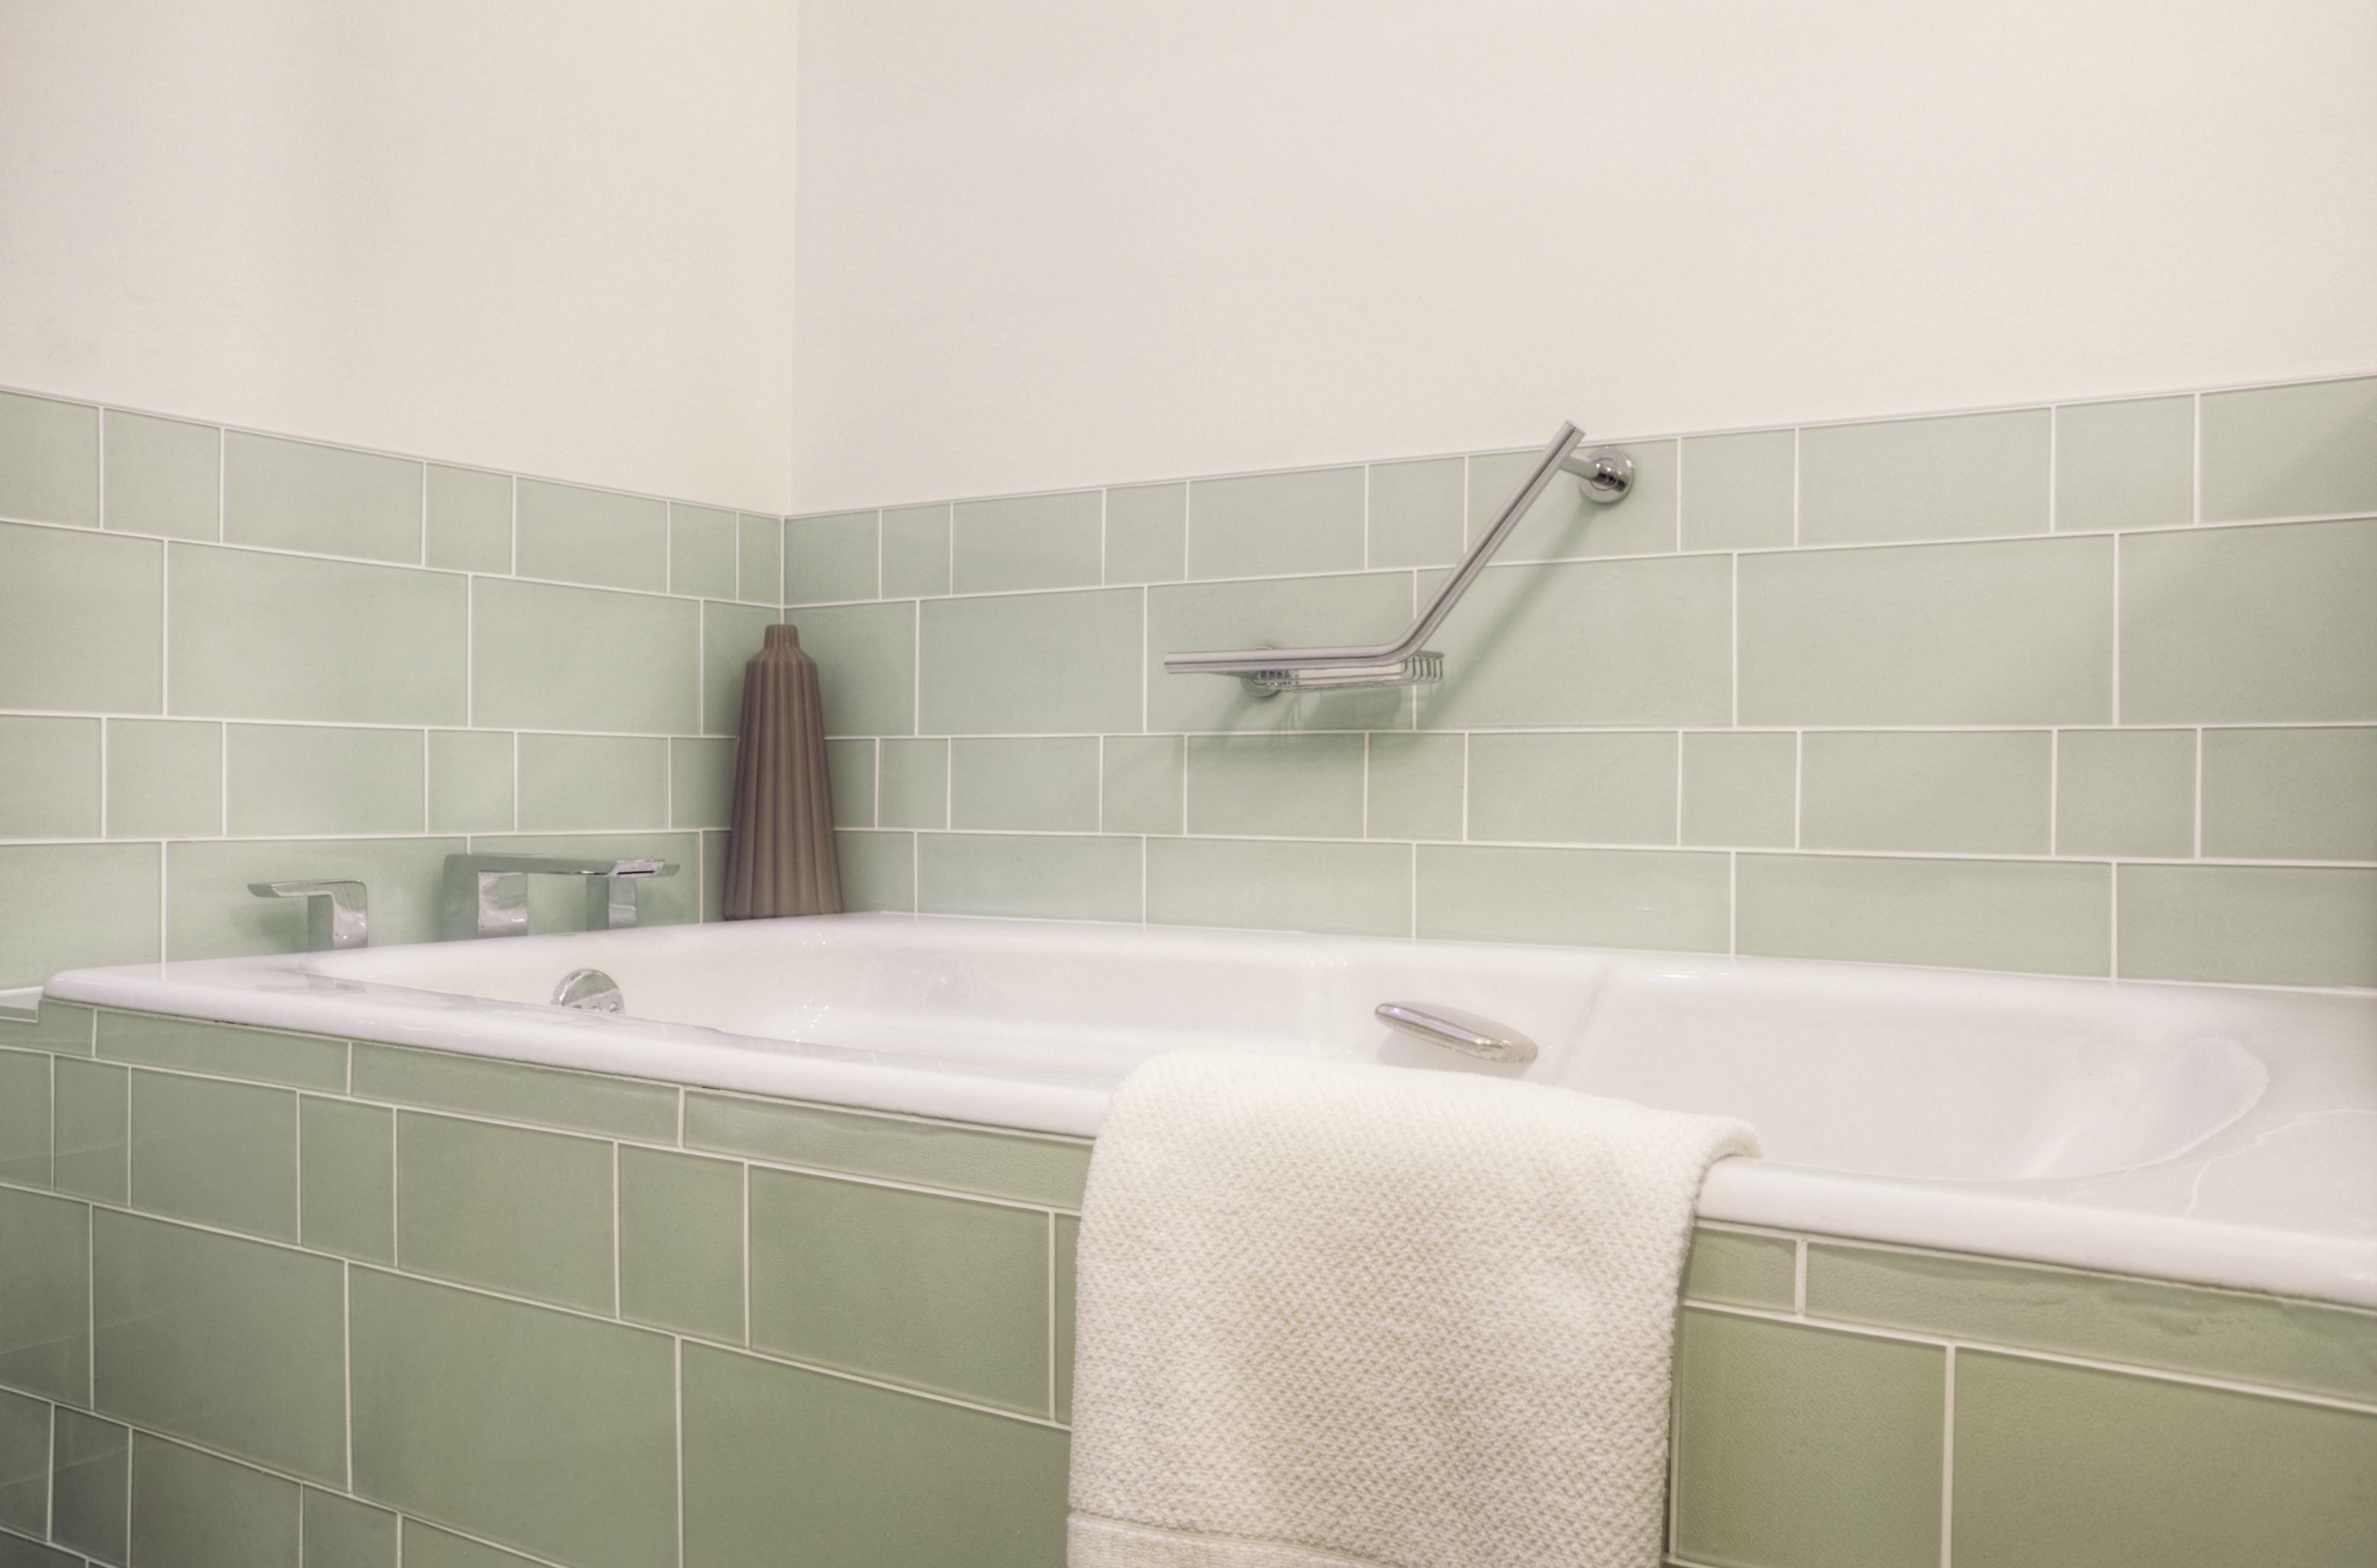 Glass Tile for Bathrooms & Kitchens - Time to Build | Tiles, etc ...